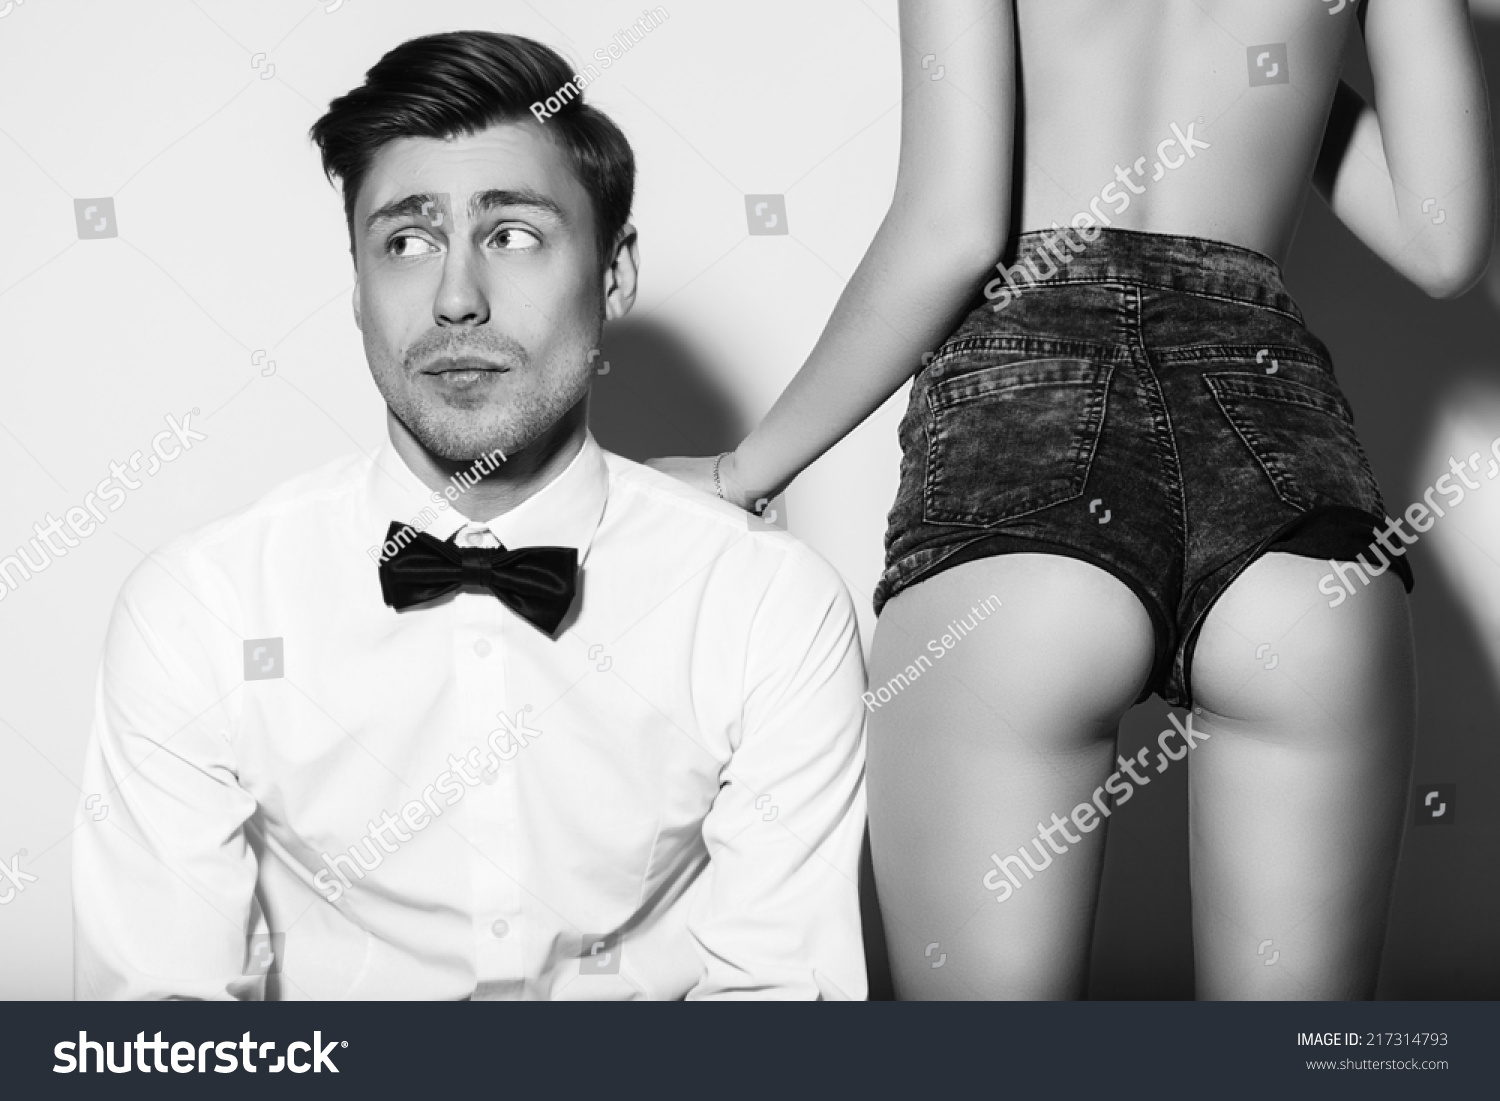 lovers people sex symbol sexy woman stock photo & image (royalty